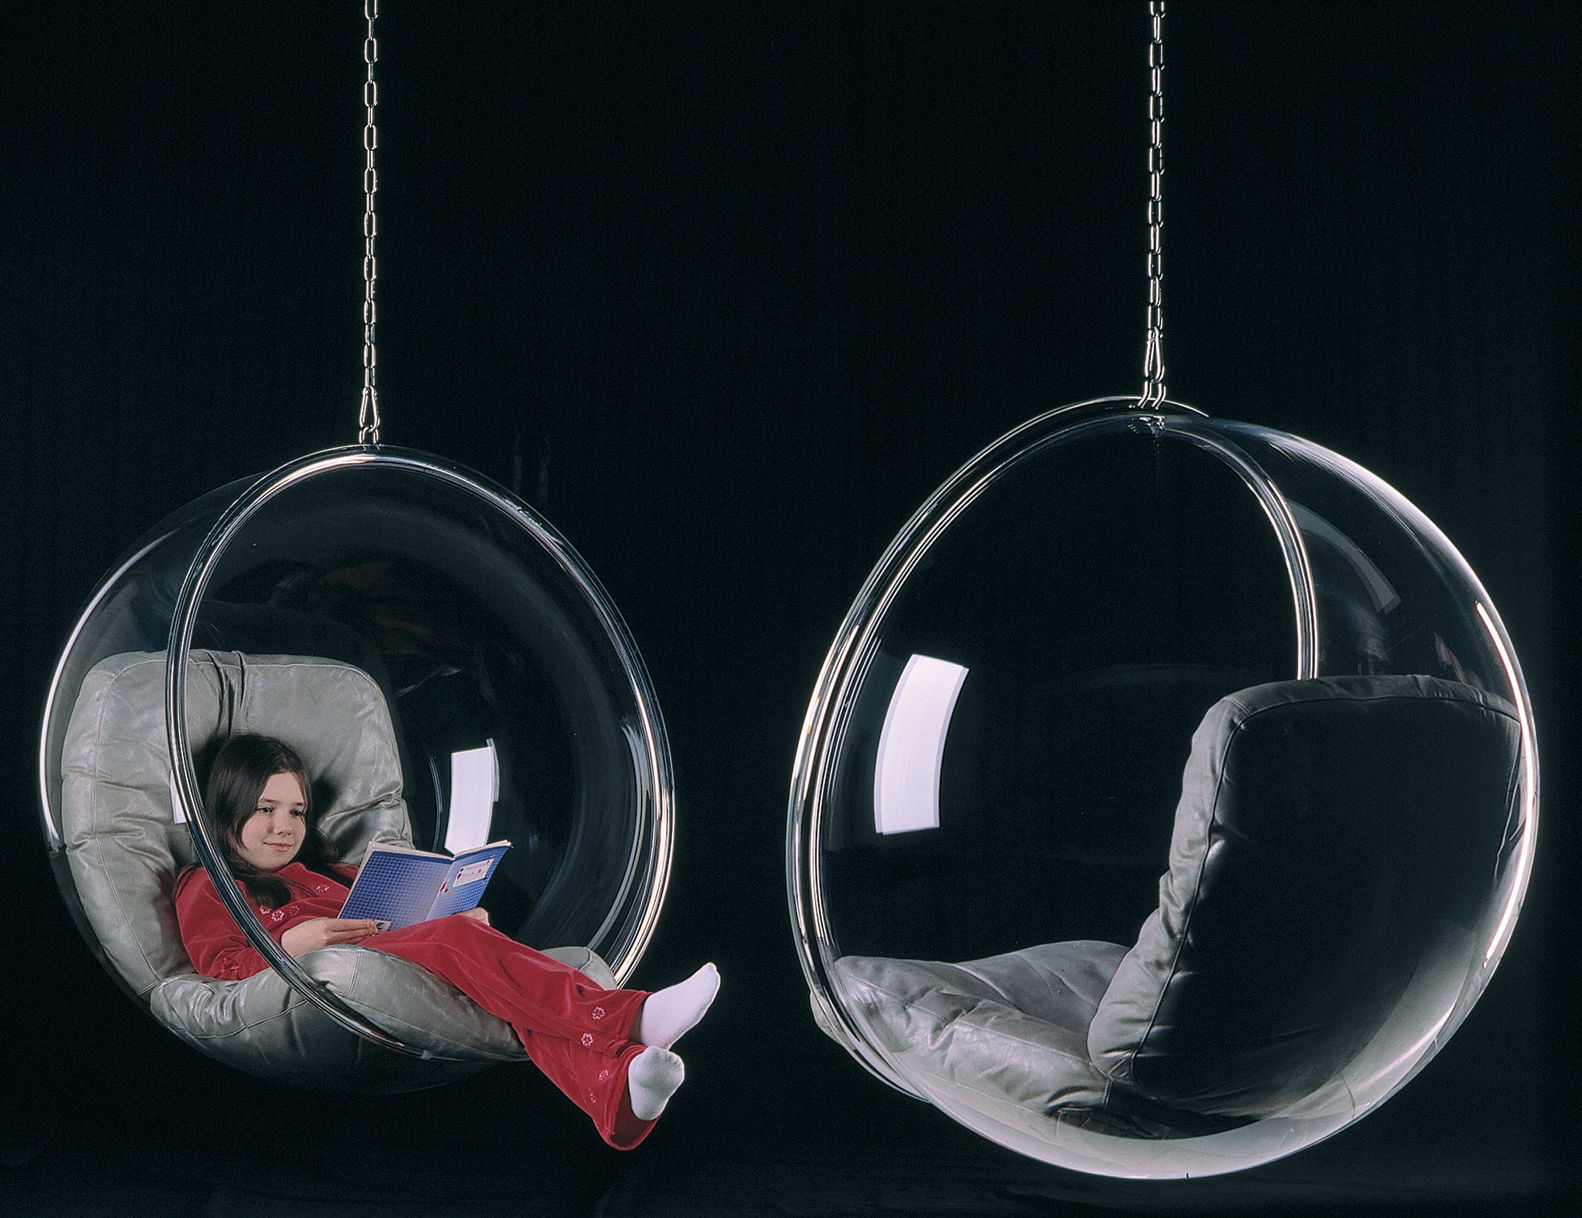 Bubble chair eero aarnio - Zoom